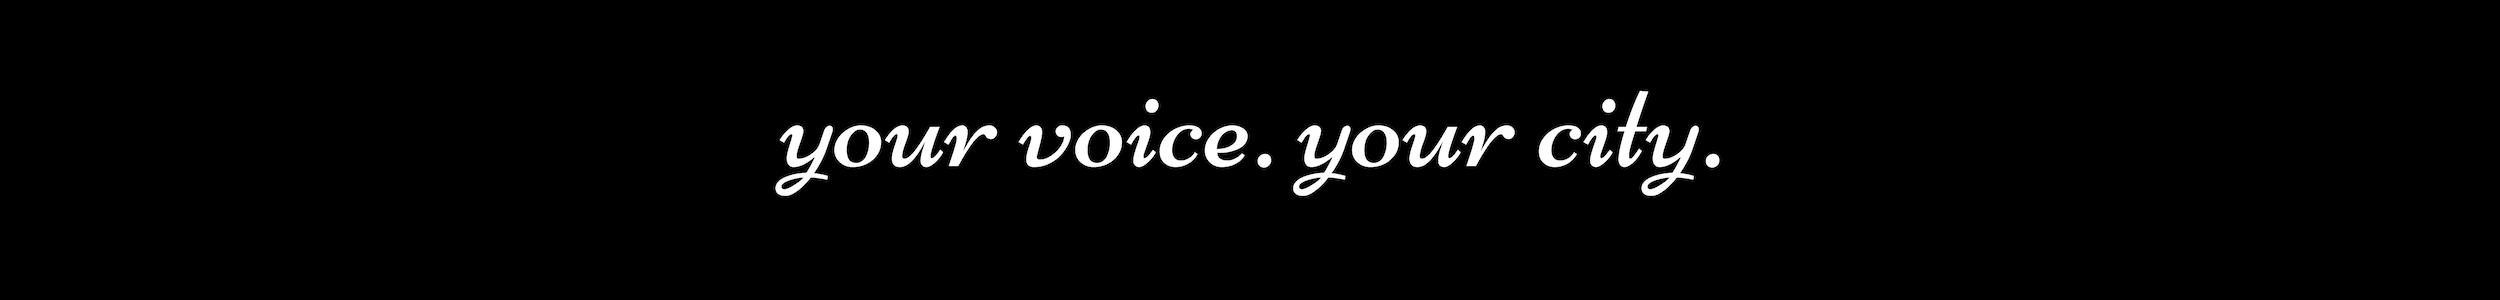 your voice. your city..png